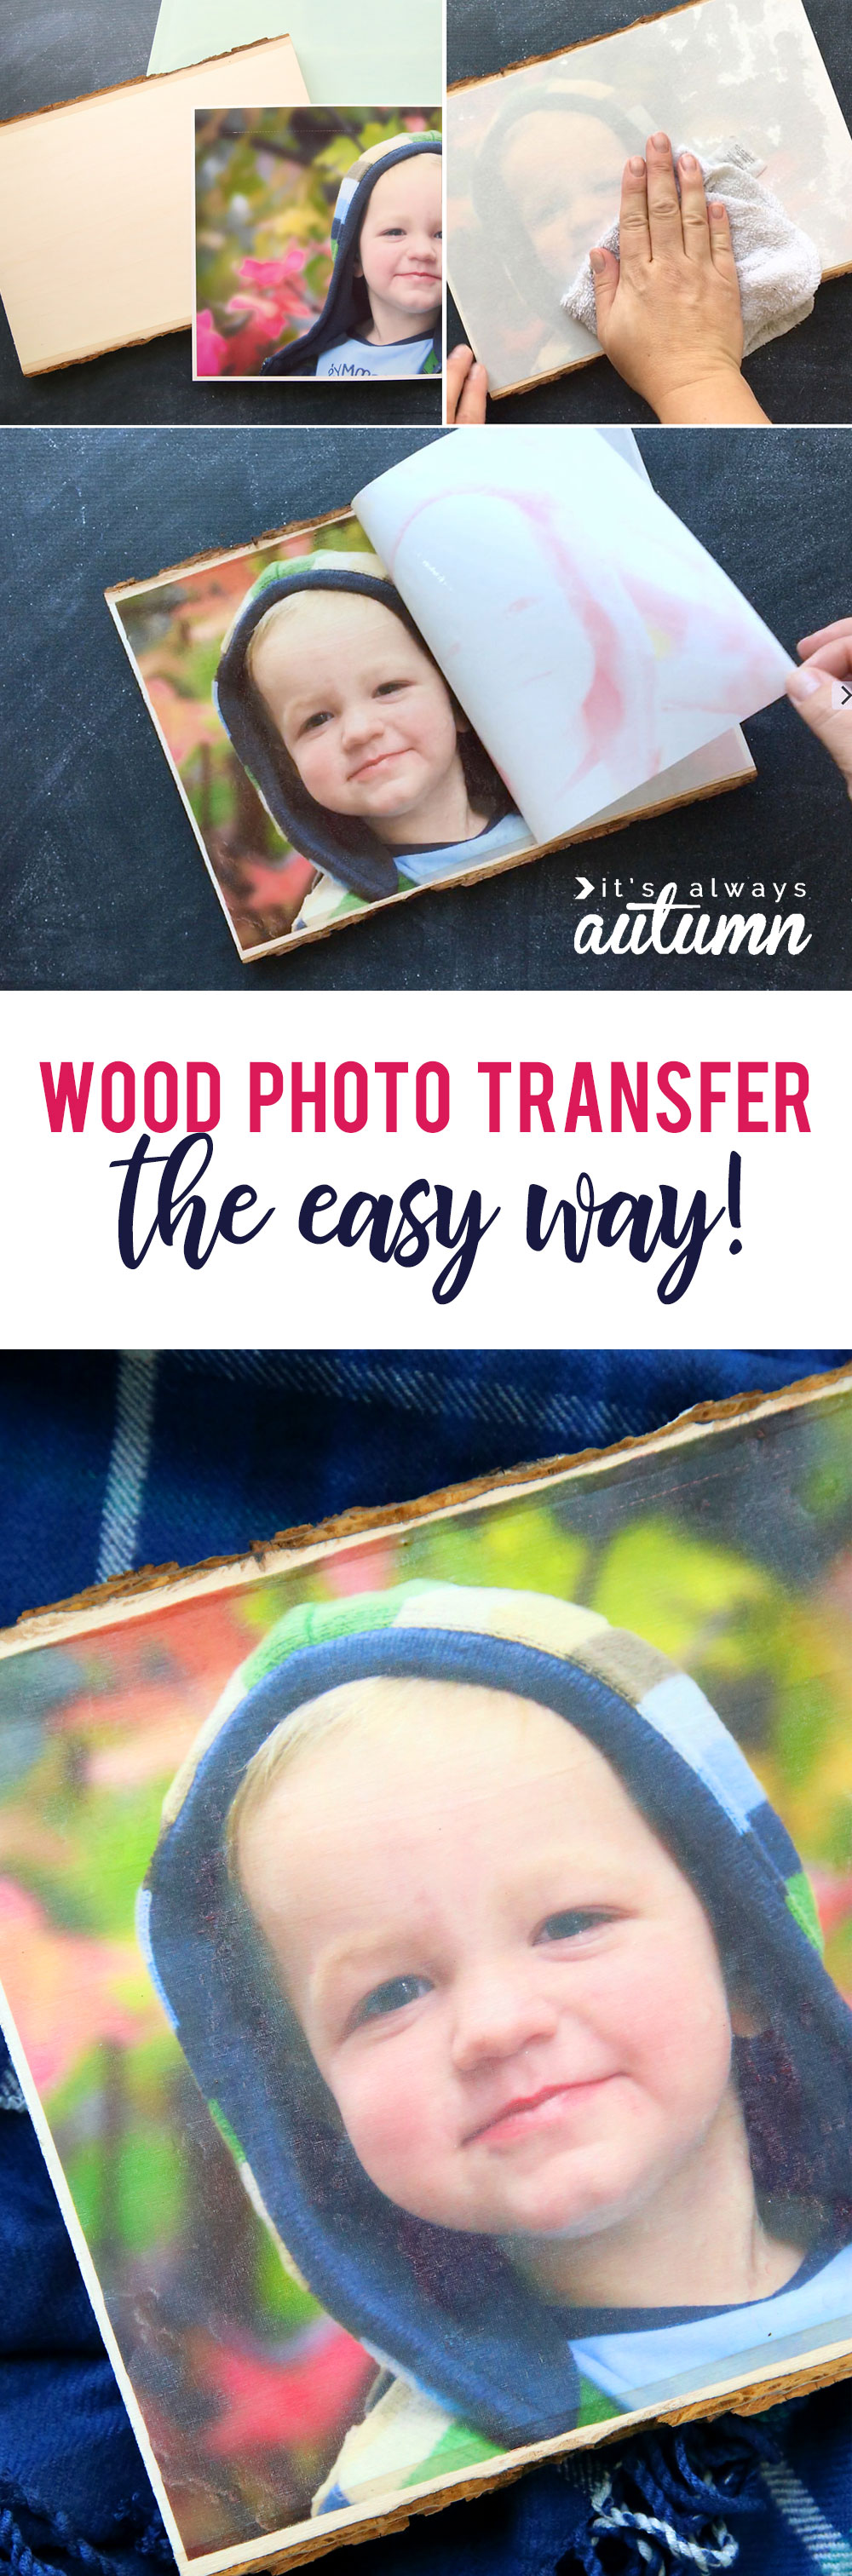 Wood photo transfer the easy way